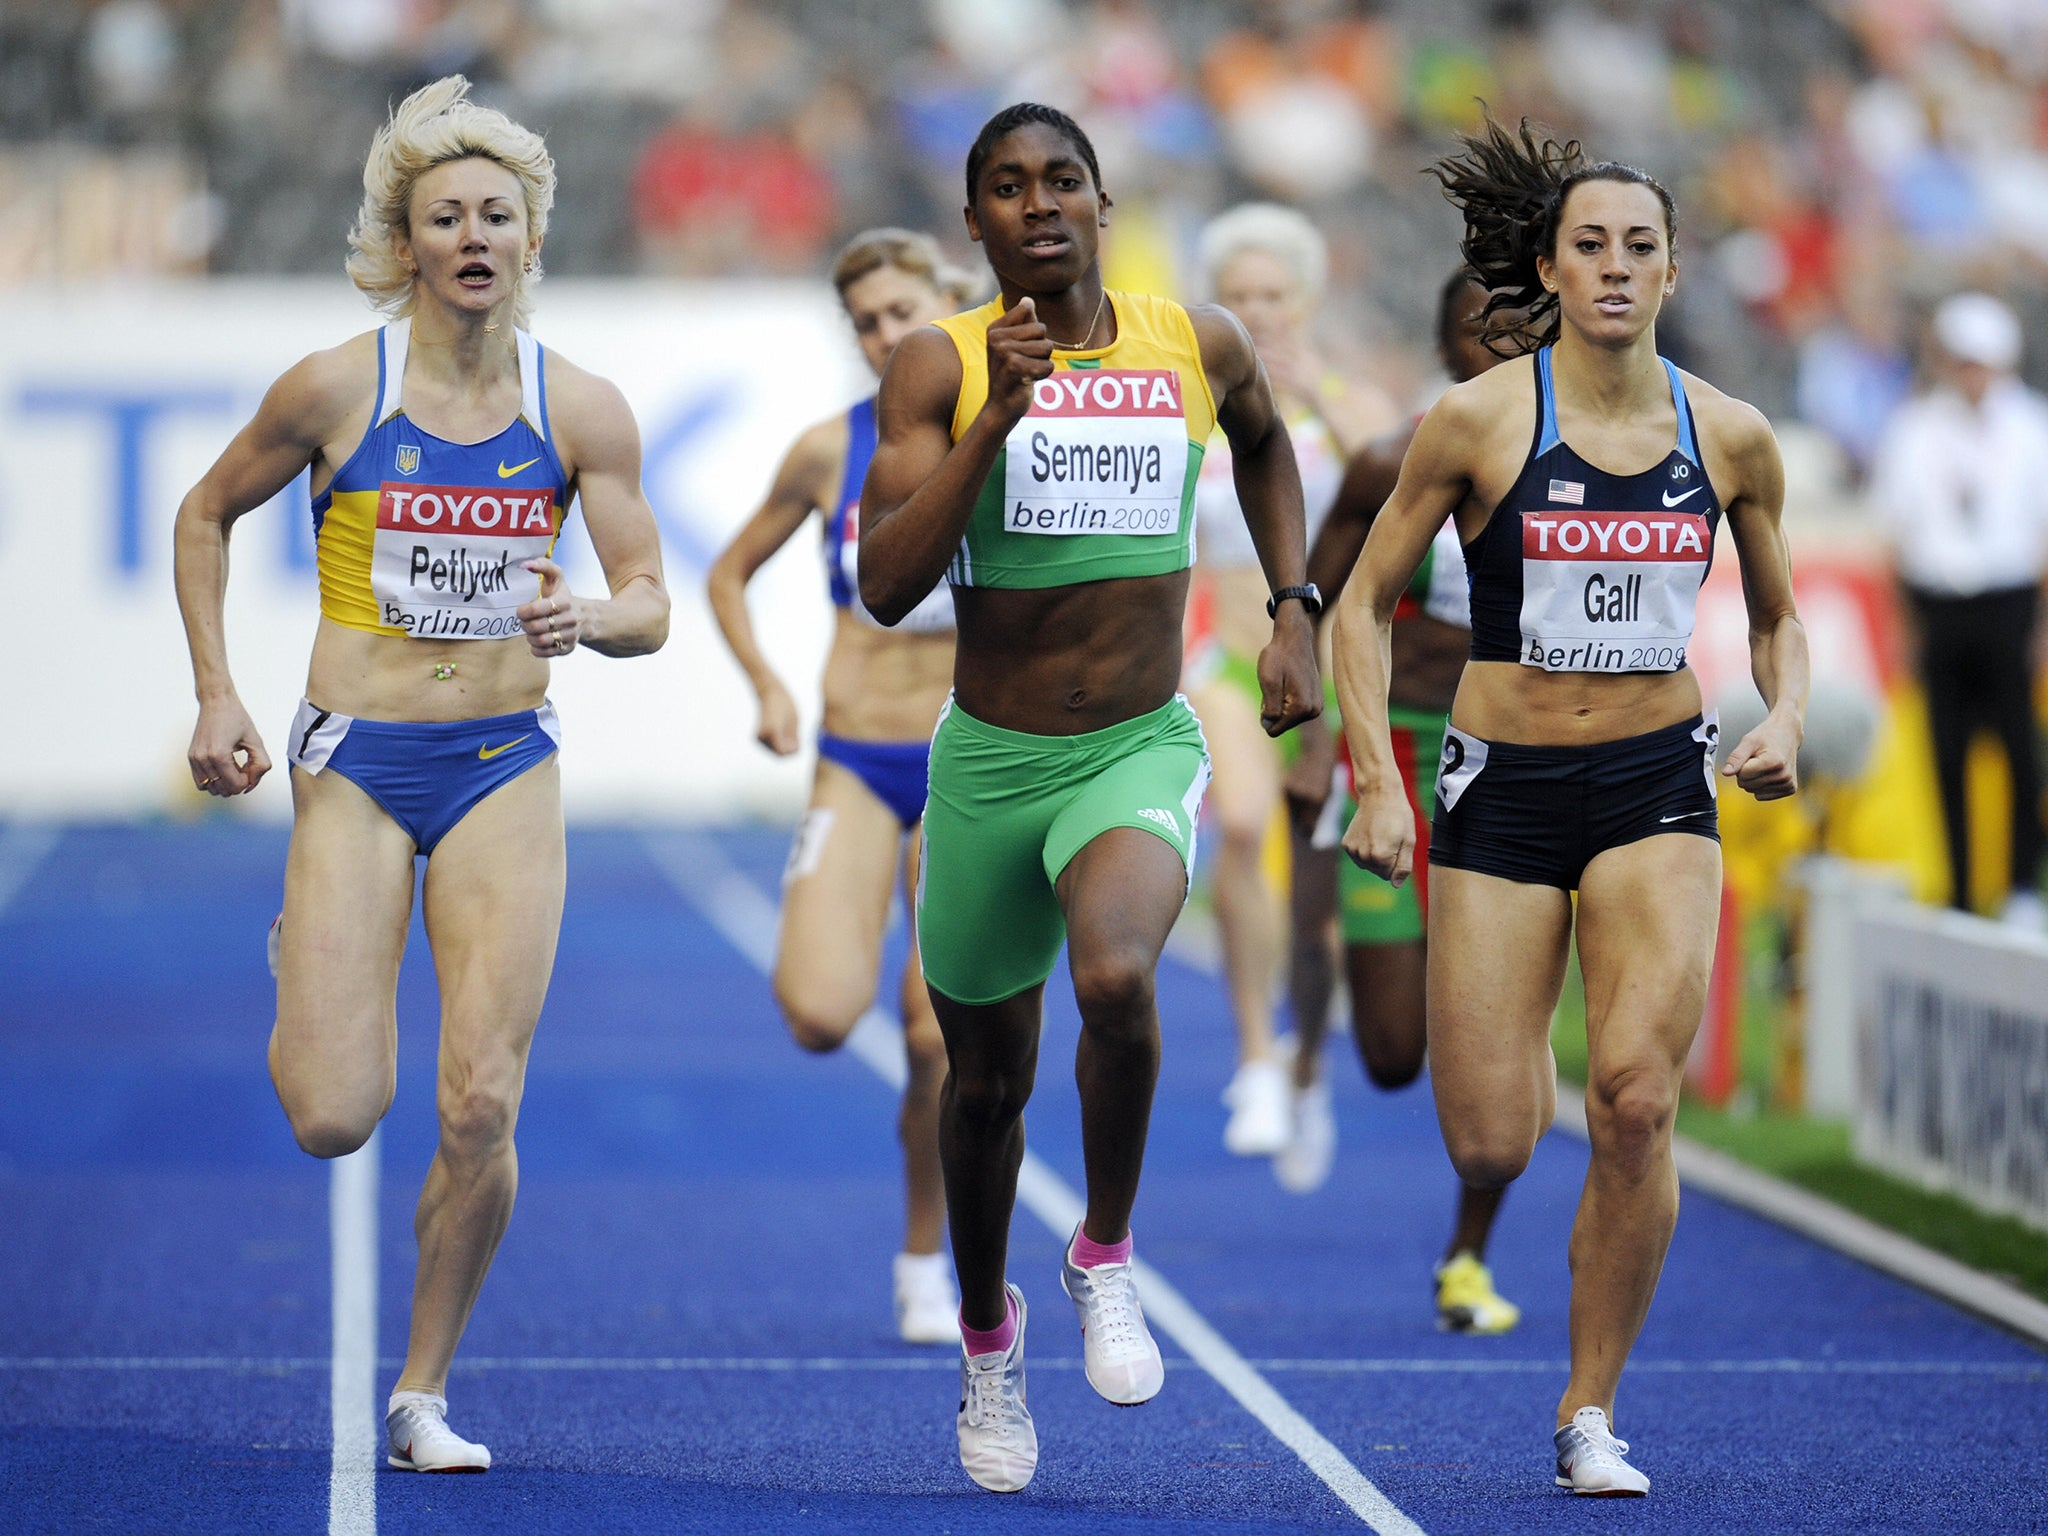 What the Caster Semenya v IAAF ruling means for women in sport